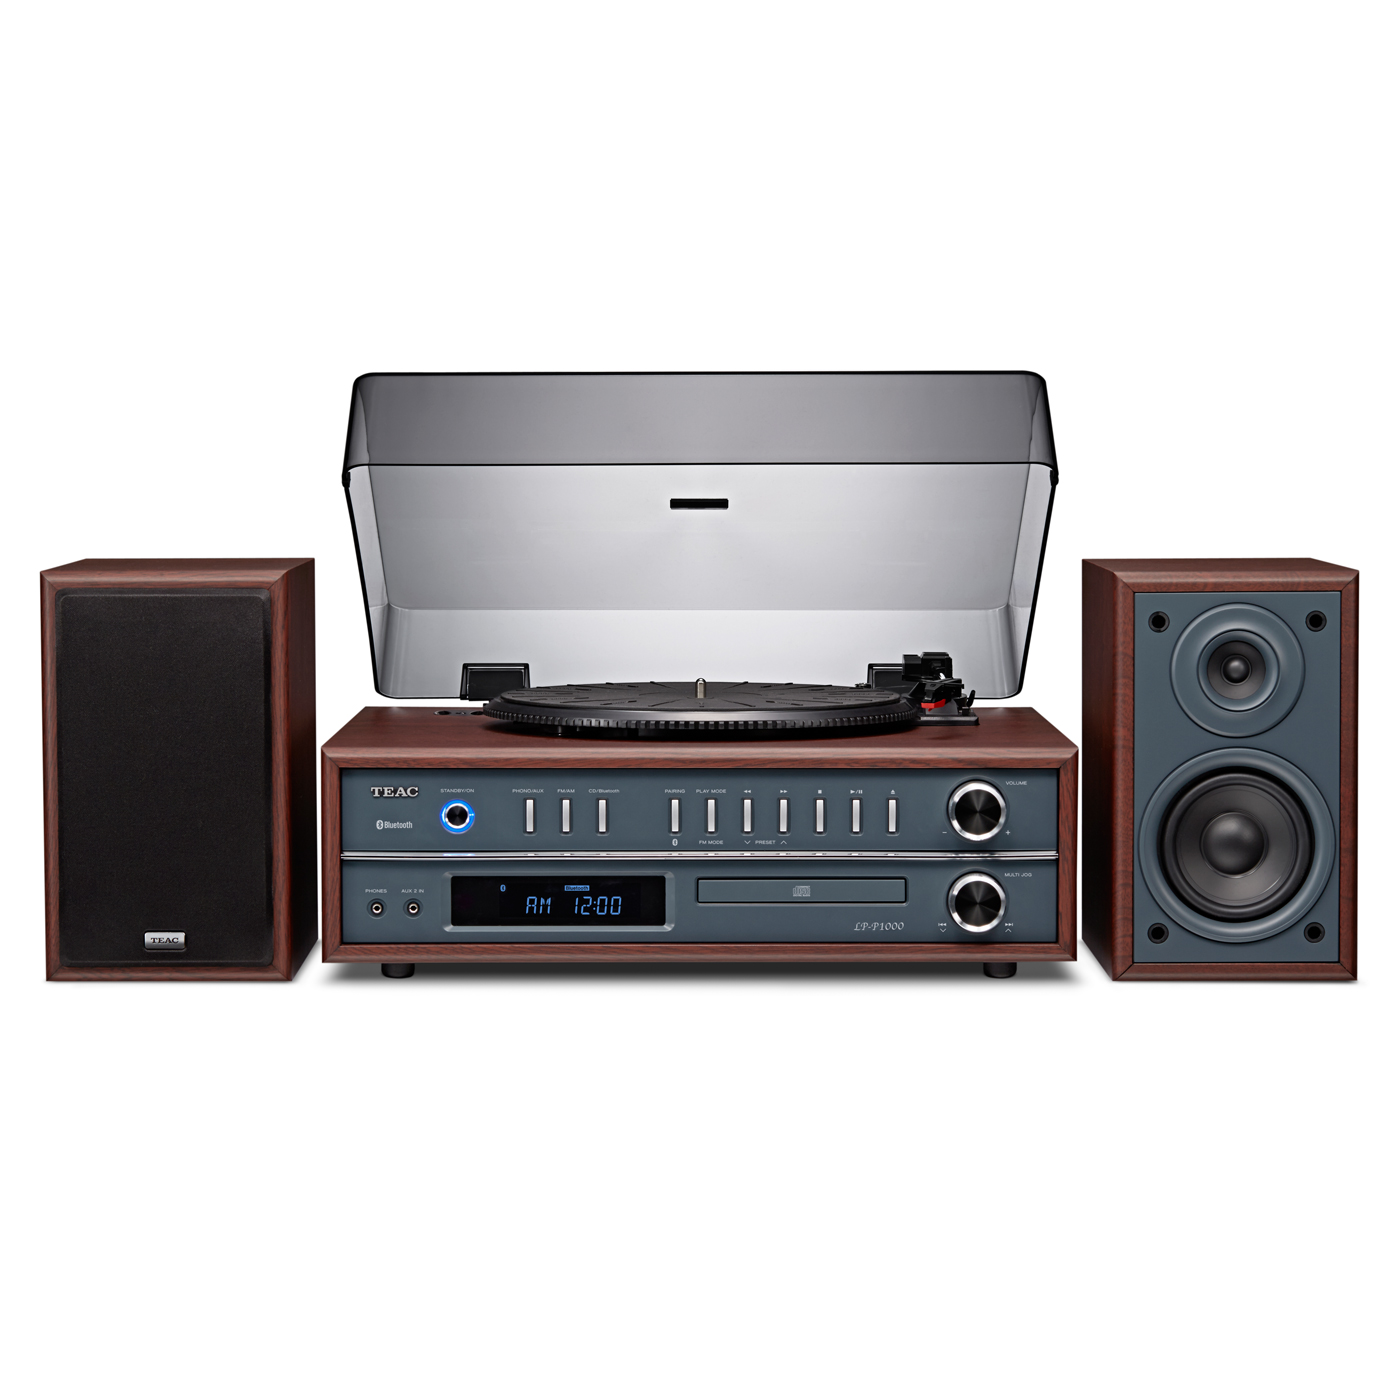 TEAC LP-P1000 Turntable Stereo System With Bluetooth/CD/Radio (Cherry)